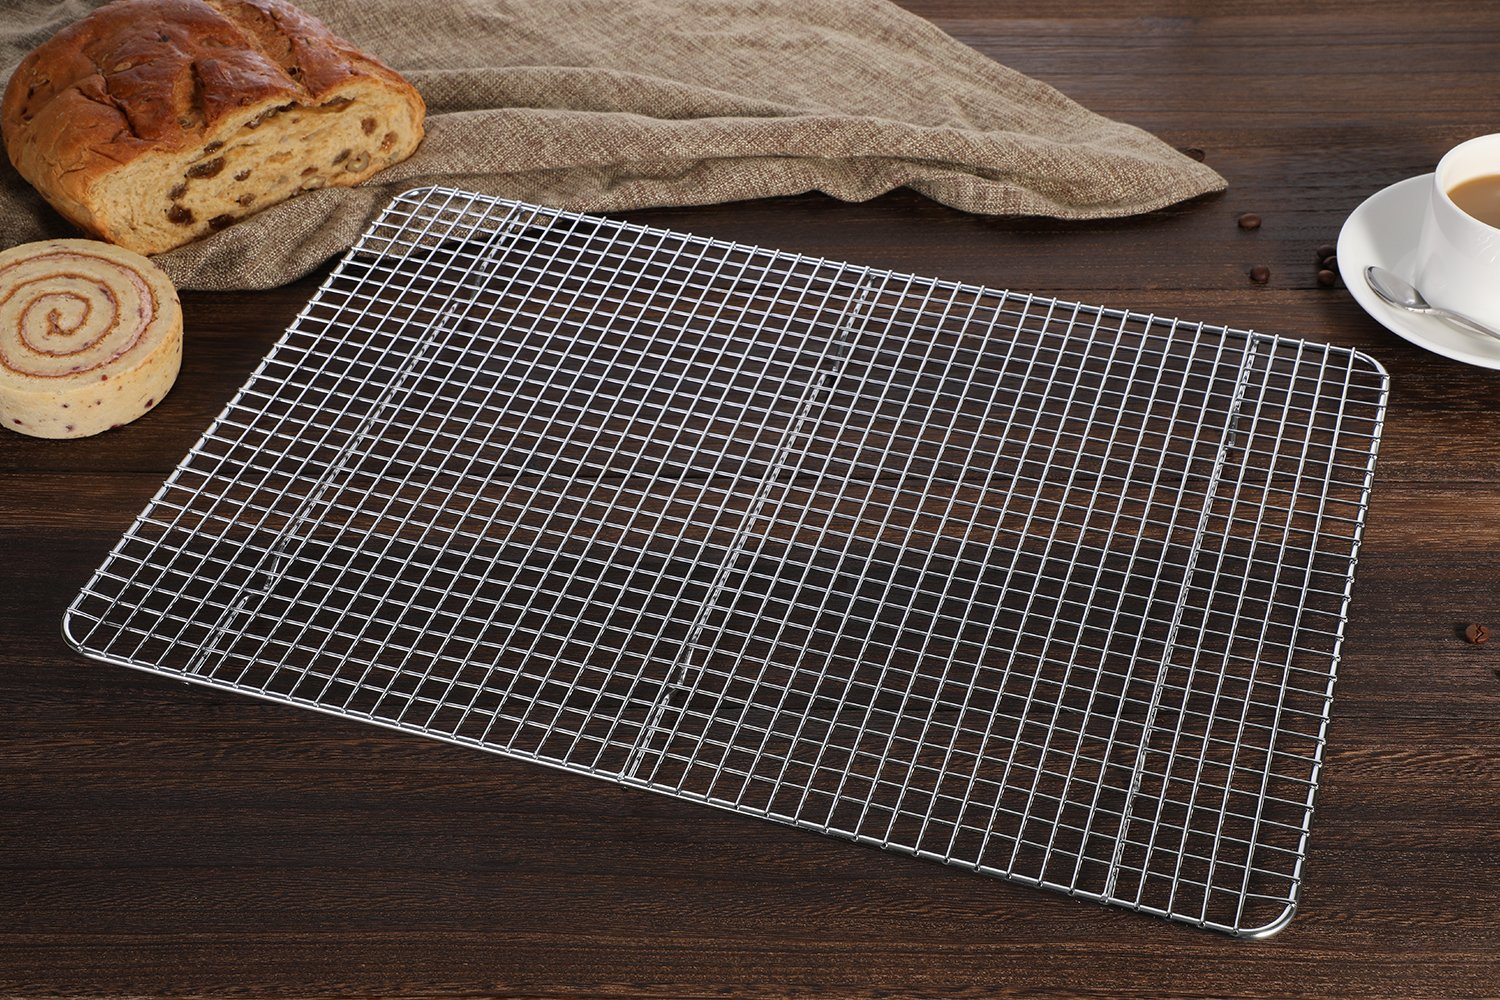 "Hiware Cooling Rack for Baking - 11.8"" x 16.5"" - Stainless Steel Wire Cookie Rack Fits Half Sheet Pan, Oven Safe for Cooking, Roasting, Grilling 7 SOLID STAINLESS STEEL GRID CONSTRUCTION - Hiware's cooling rack is made of high quality [GRADE] stainless steel that is made to last for years. The tight grid design gives stability to the rack, which makes it easy to balance baked goods, meats, fruits, and vegetables without the possibility of them falling through the slats. OVEN AND GRILL SAFE - This commercial-grade rack resists heat up to 575 degrees Fahrenheit making it perfect for use in the oven or grill. This versatile rack is the perfect complement to any kitchen and holds up to 20 pounds of food without sagging or bending. PERFECT SIZE - Measuring 11.8""x16.5"", the Hiware rack fits inside a half sheet (13""x18"") cookie pan or comfortably on a countertop. After use, it is easy to store in your cabinet or drawer."